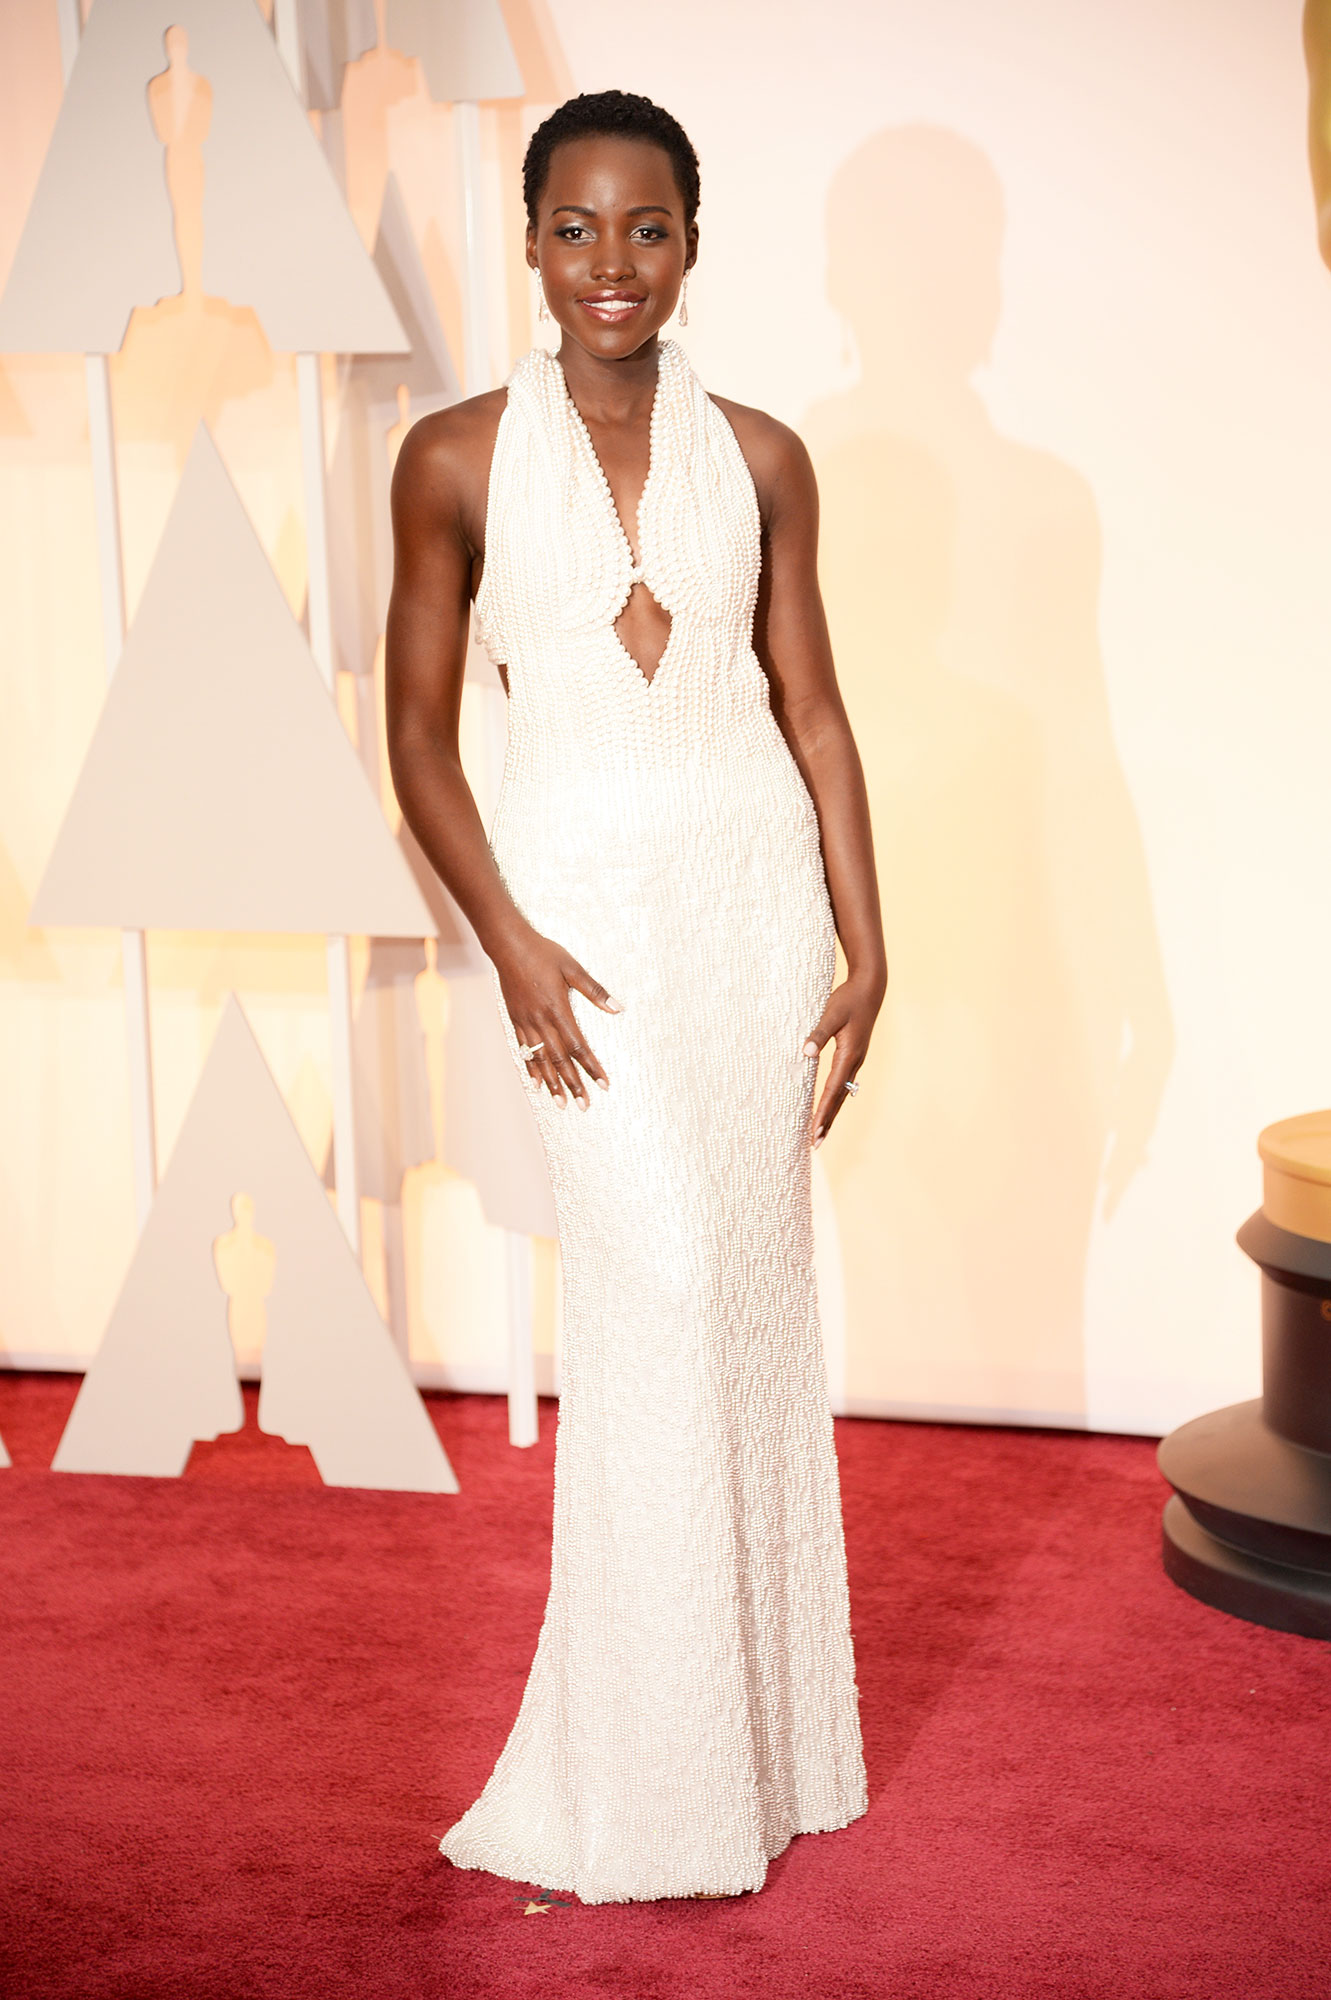 Lupita Nyong'o Celeb-Fave Calvin Klein Is Shutting Down Its Runway and Collection Businesses - Actress Lupita Nyong'o arrives in Chopard to the 87th Annual Academy Awards at Hollywood